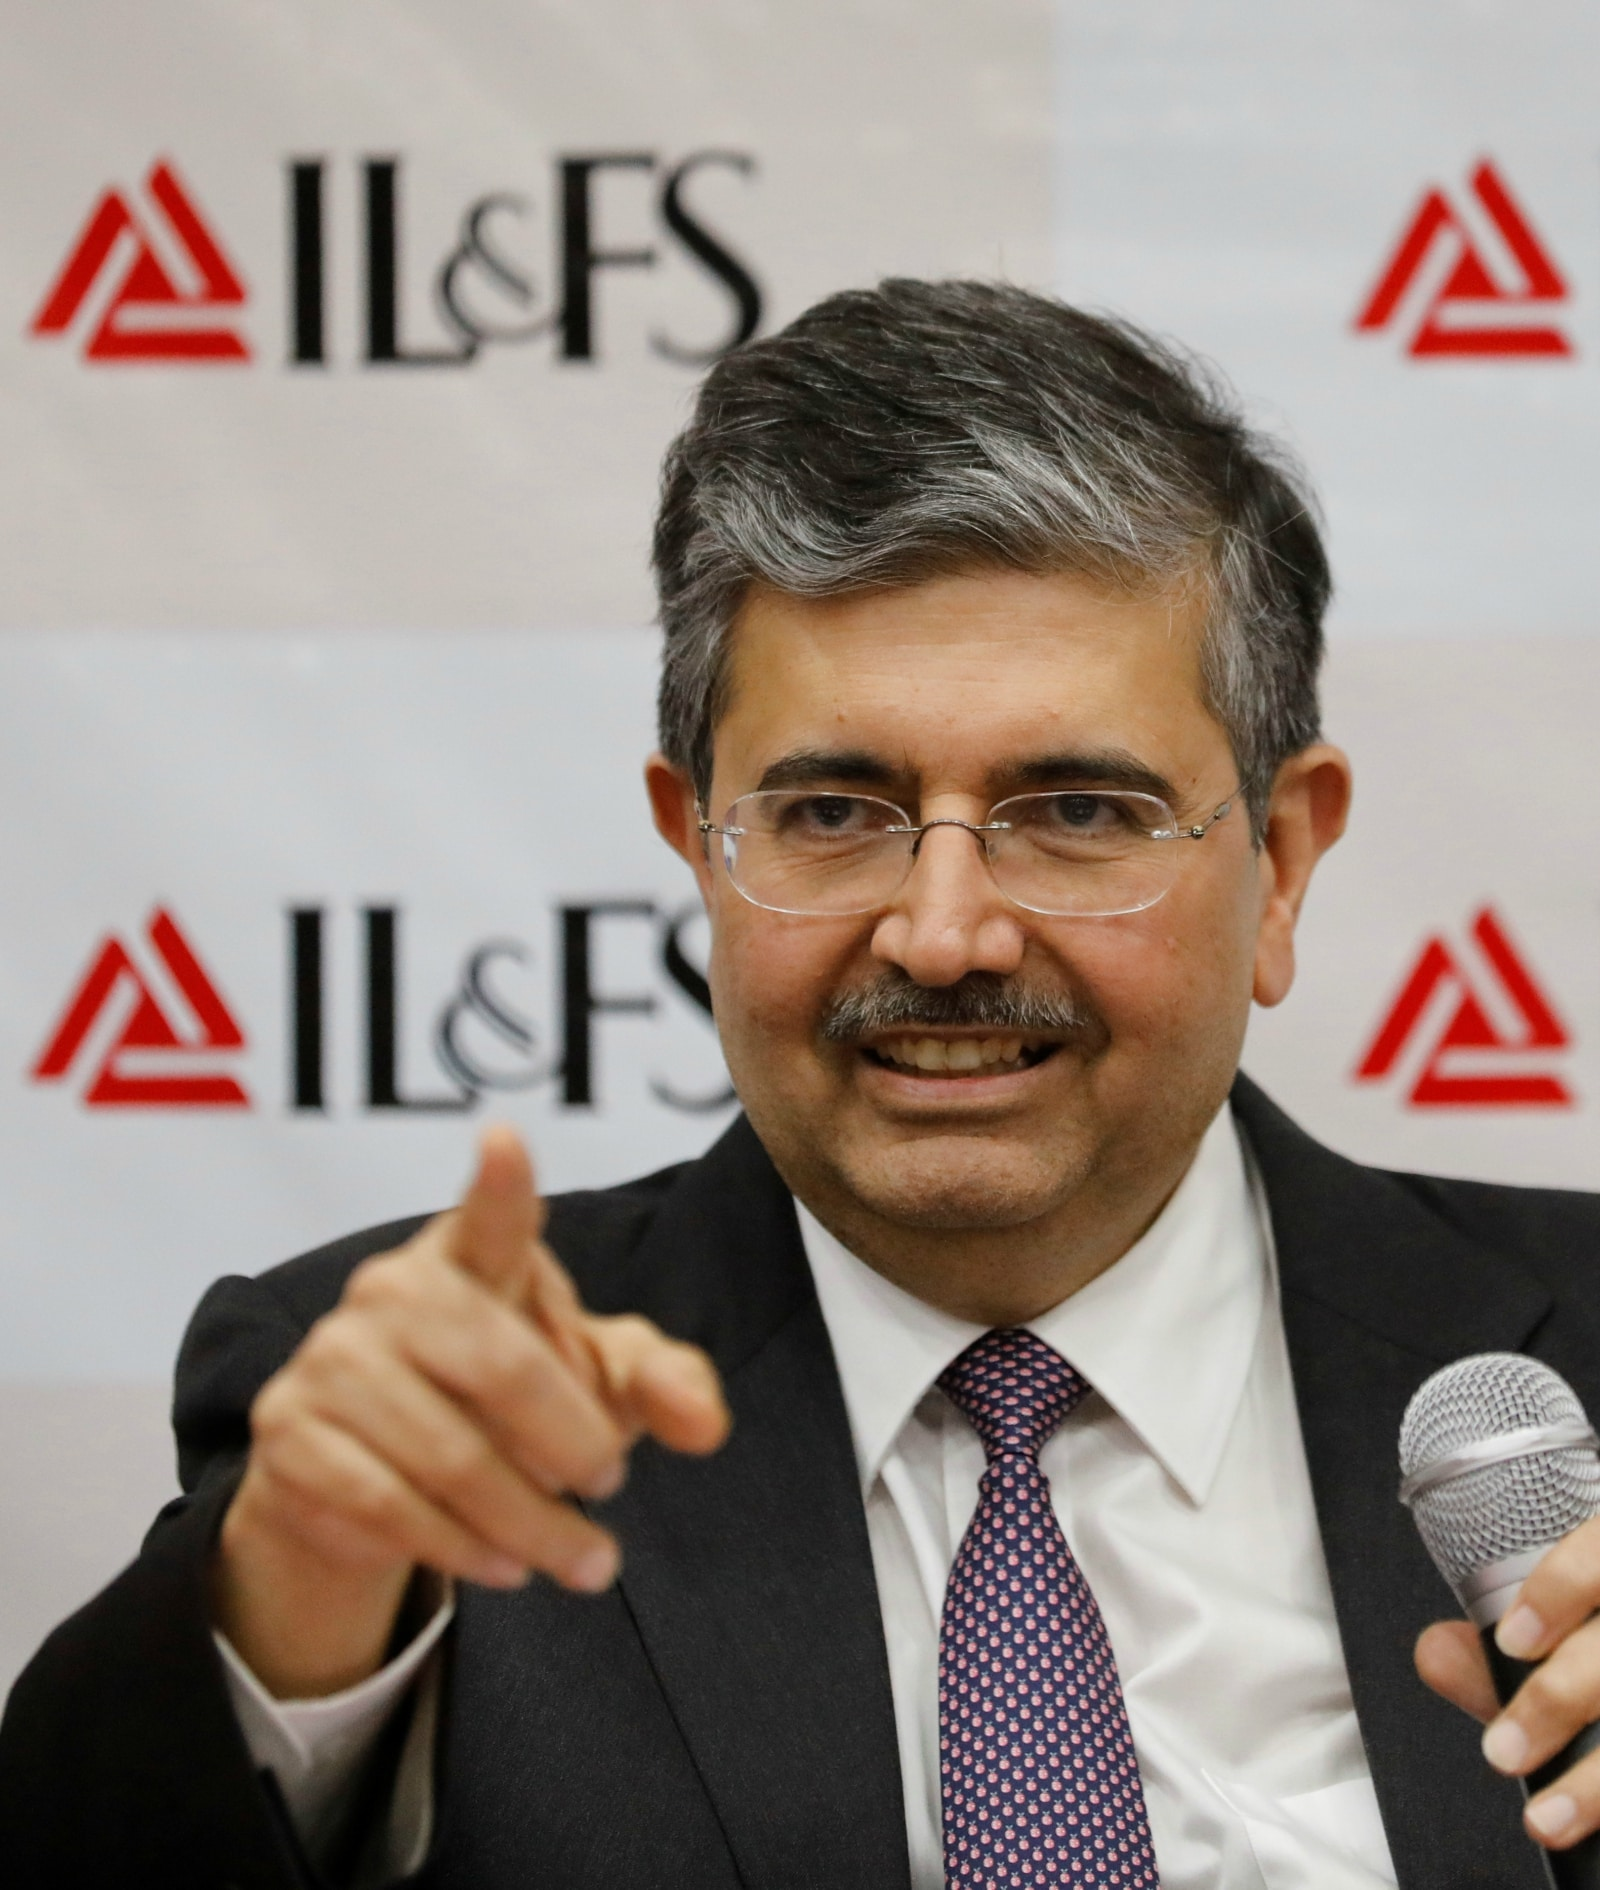 6: <strong>Uday Kotak</strong>, who is the CEO and managing director of Kotak Mahindra Bank, has a total wealth of Rs 94,100 crore.